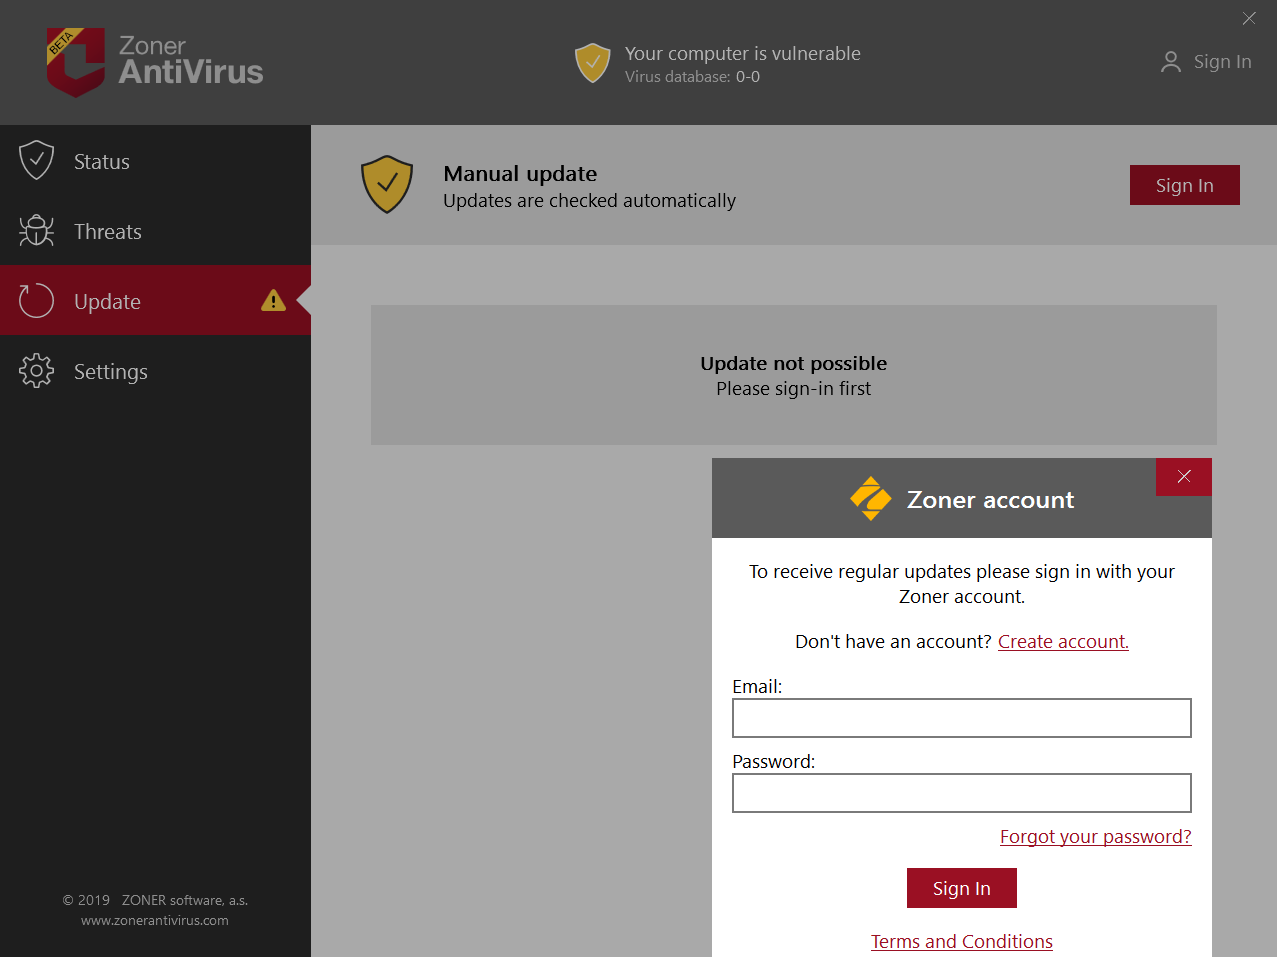 Zoner AntiVirus requires you to register an account